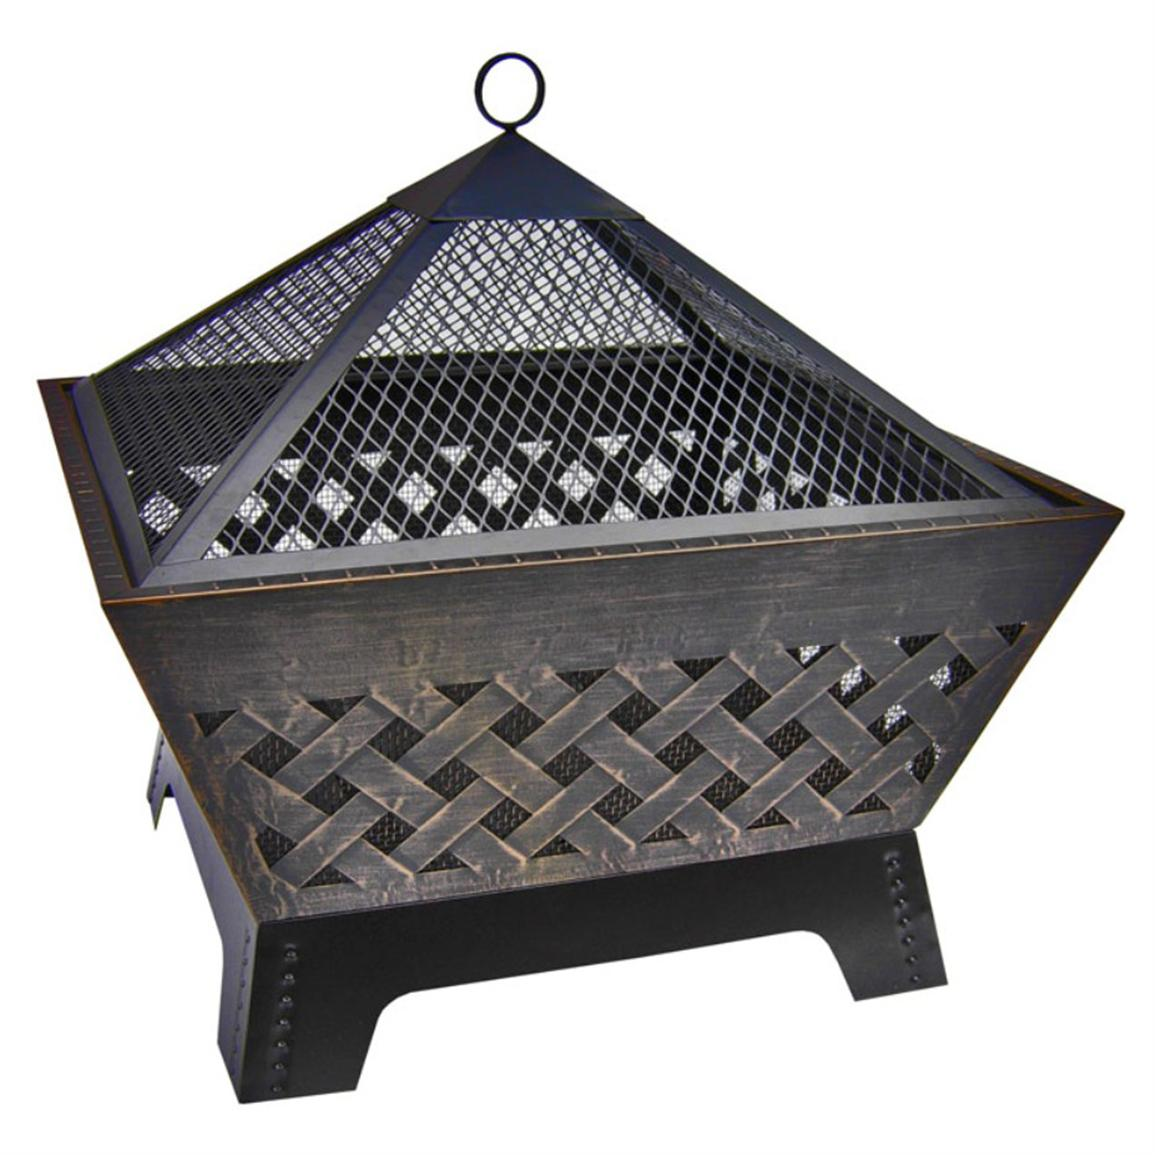 Landmann 26 inch Barrone Fire Pit with Cover